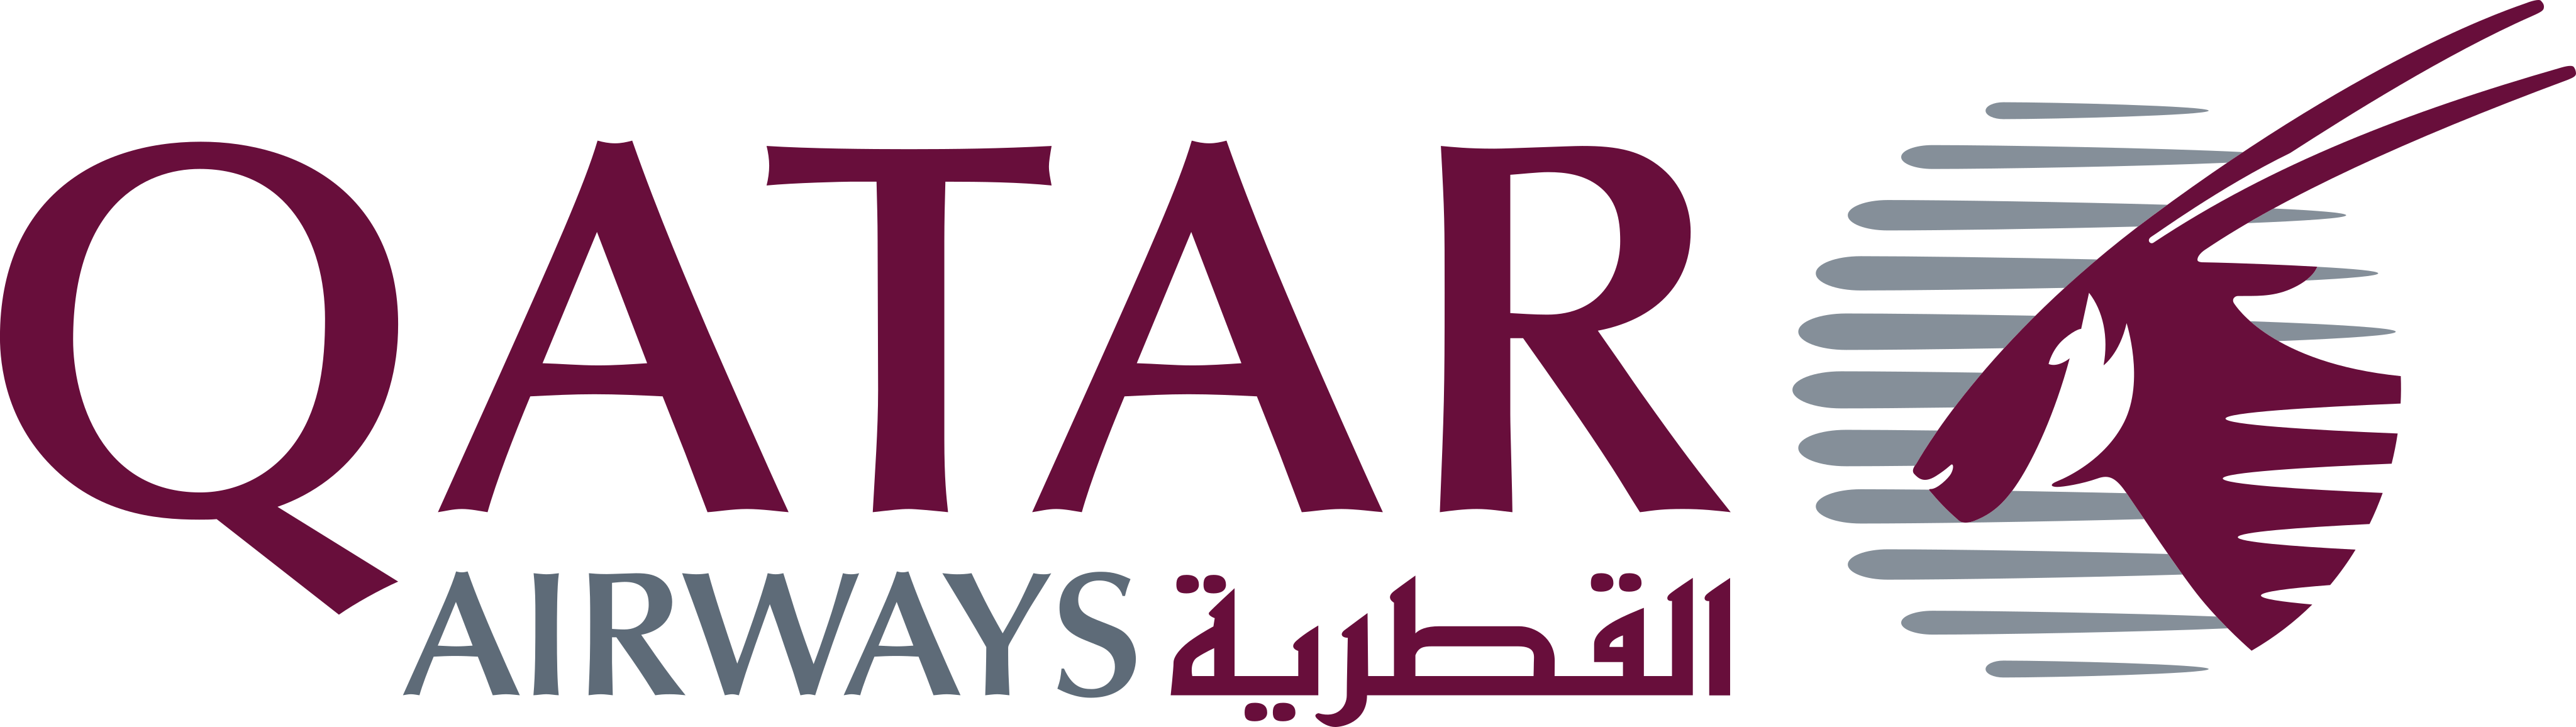 qatar airways logo 1 - Qatar Airways Logo